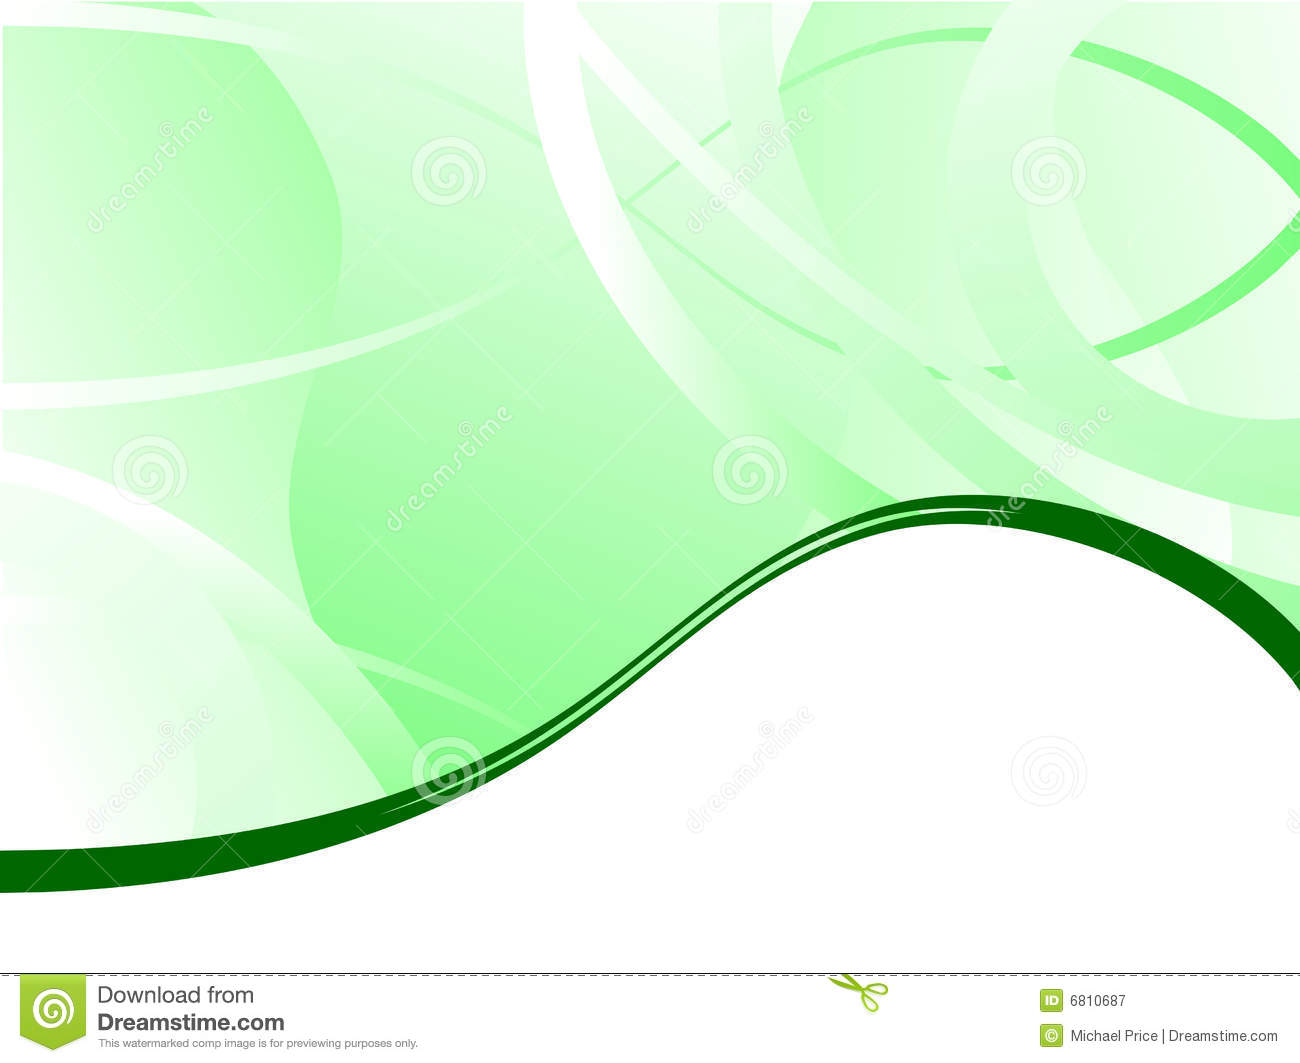 Audio Car Wallpaper Download Green Business Background Stock Vector Illustration Of